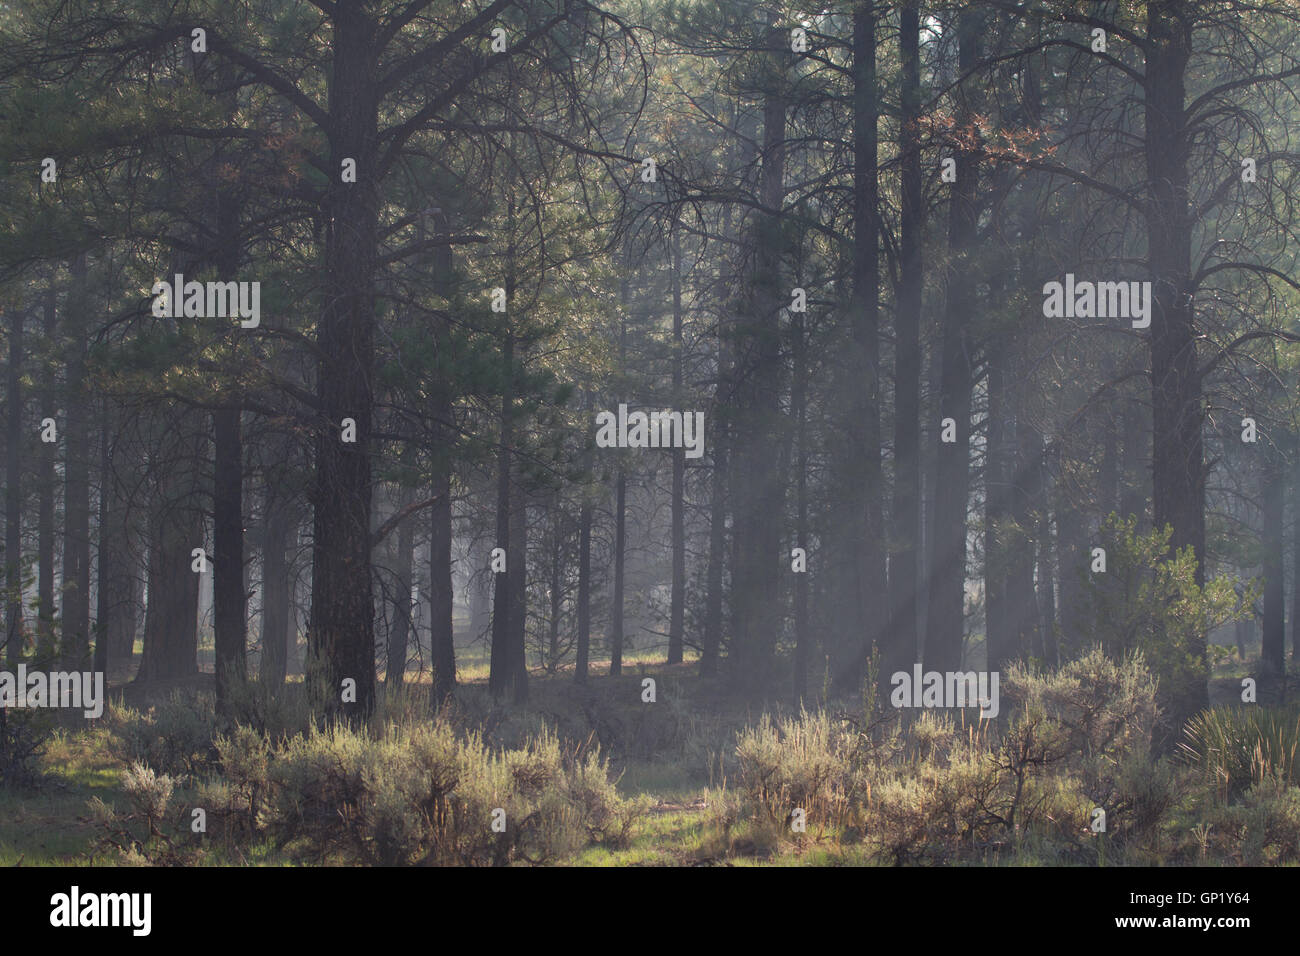 Smog from distant forest fire in Arizona, Kaibab Forest near the Grand Canyon.USA Stock Photo